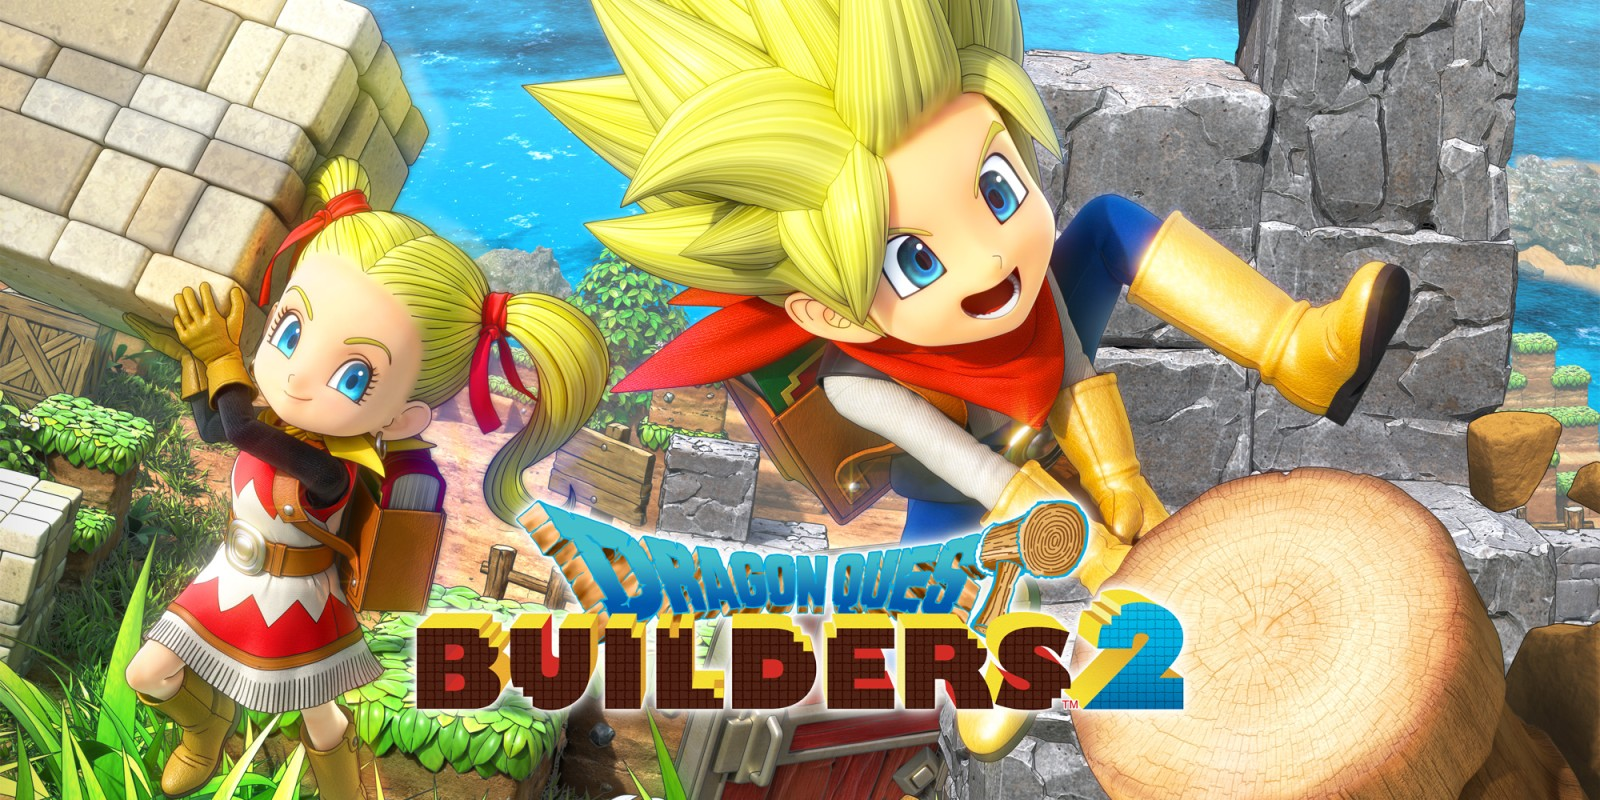 H2x1 NSwitch DragonQuestBuilders2 image1600w